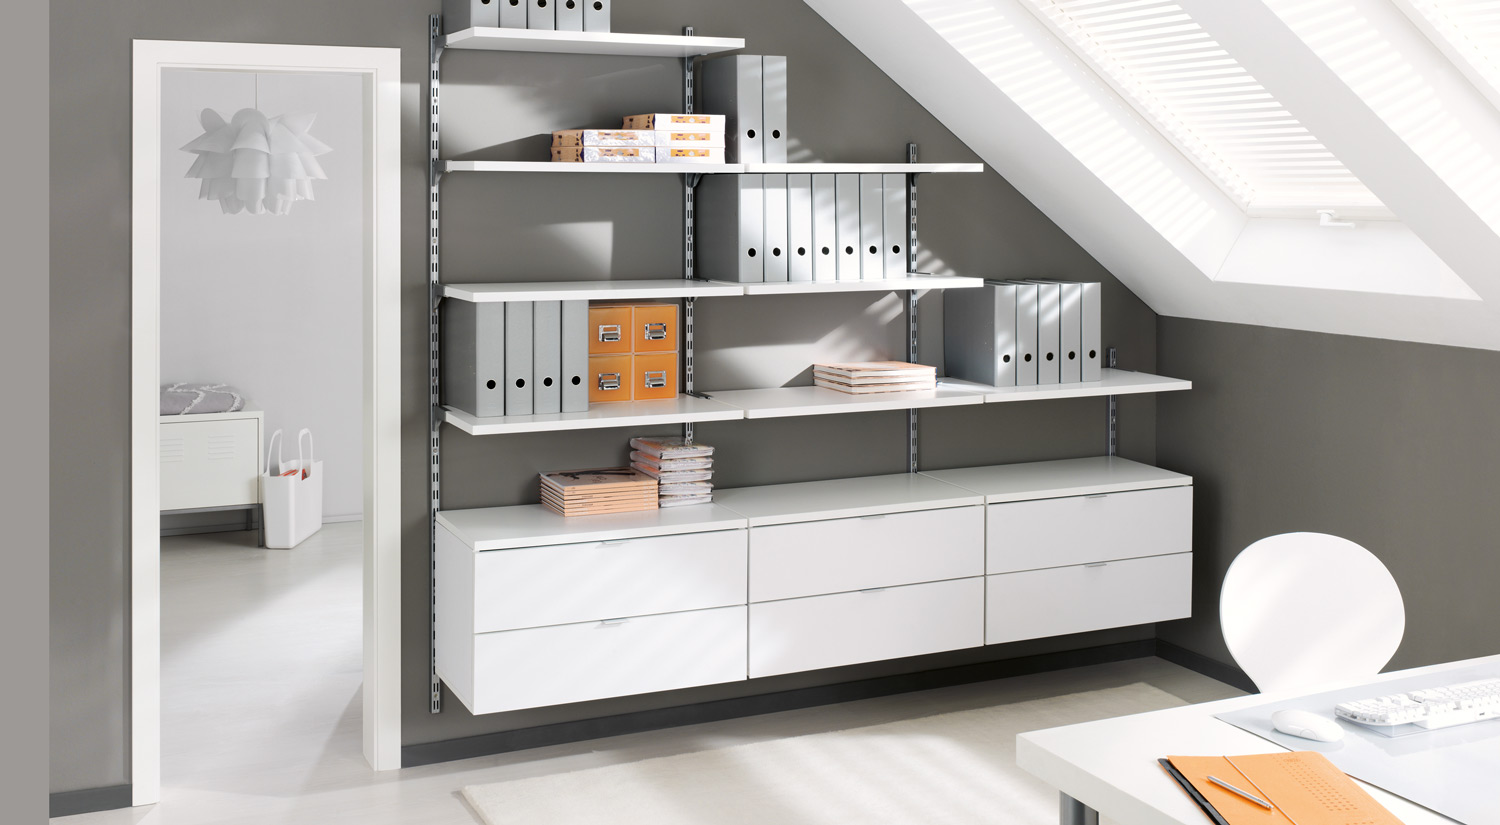 Slanted ceiling  shelves - ON-WALL shelving unit for the office